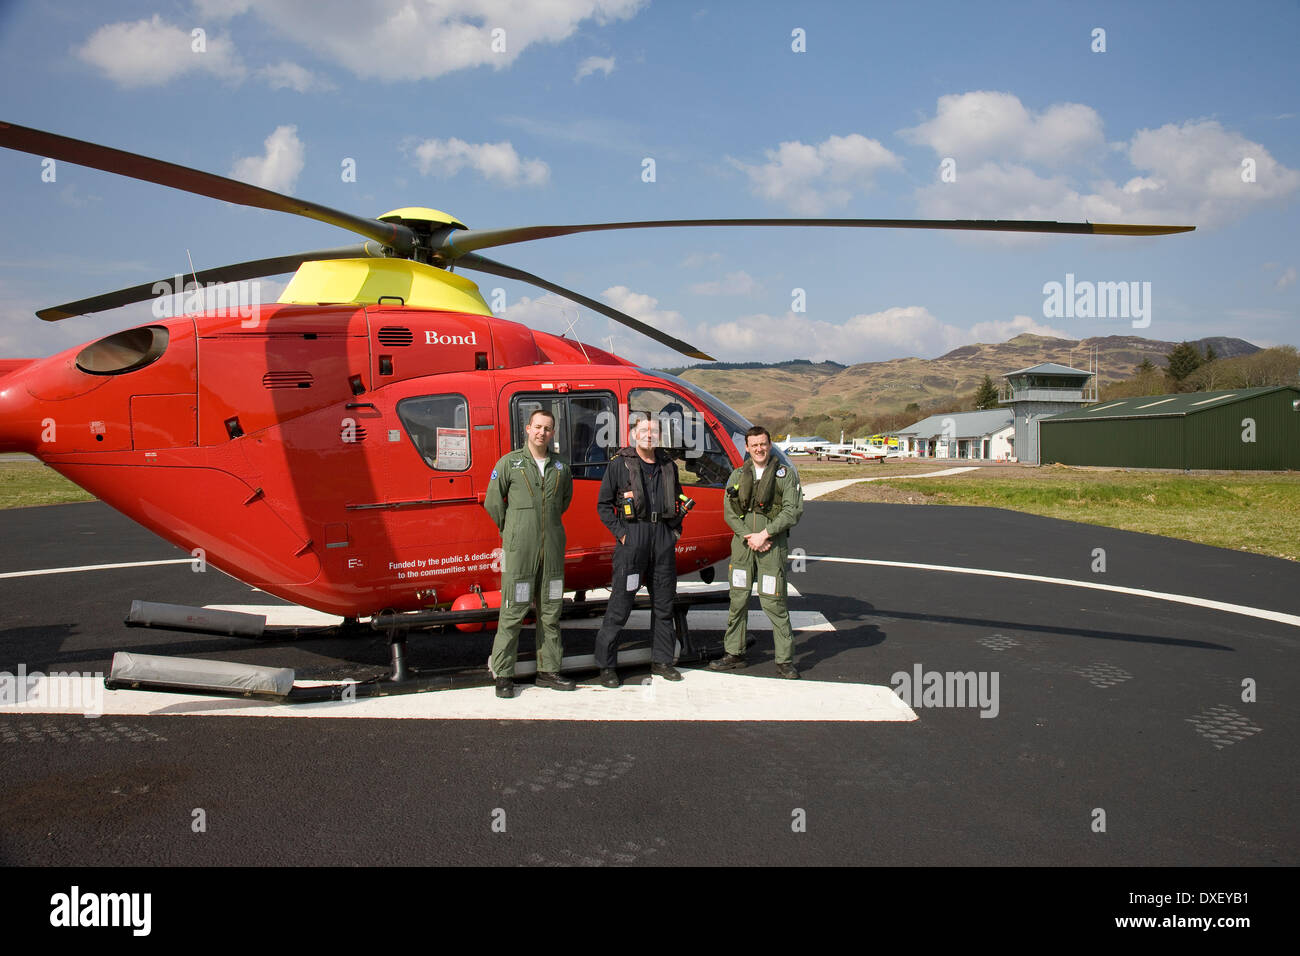 Air Ambulance helicopter & crew at oban Airport, Argyll. - Stock Image